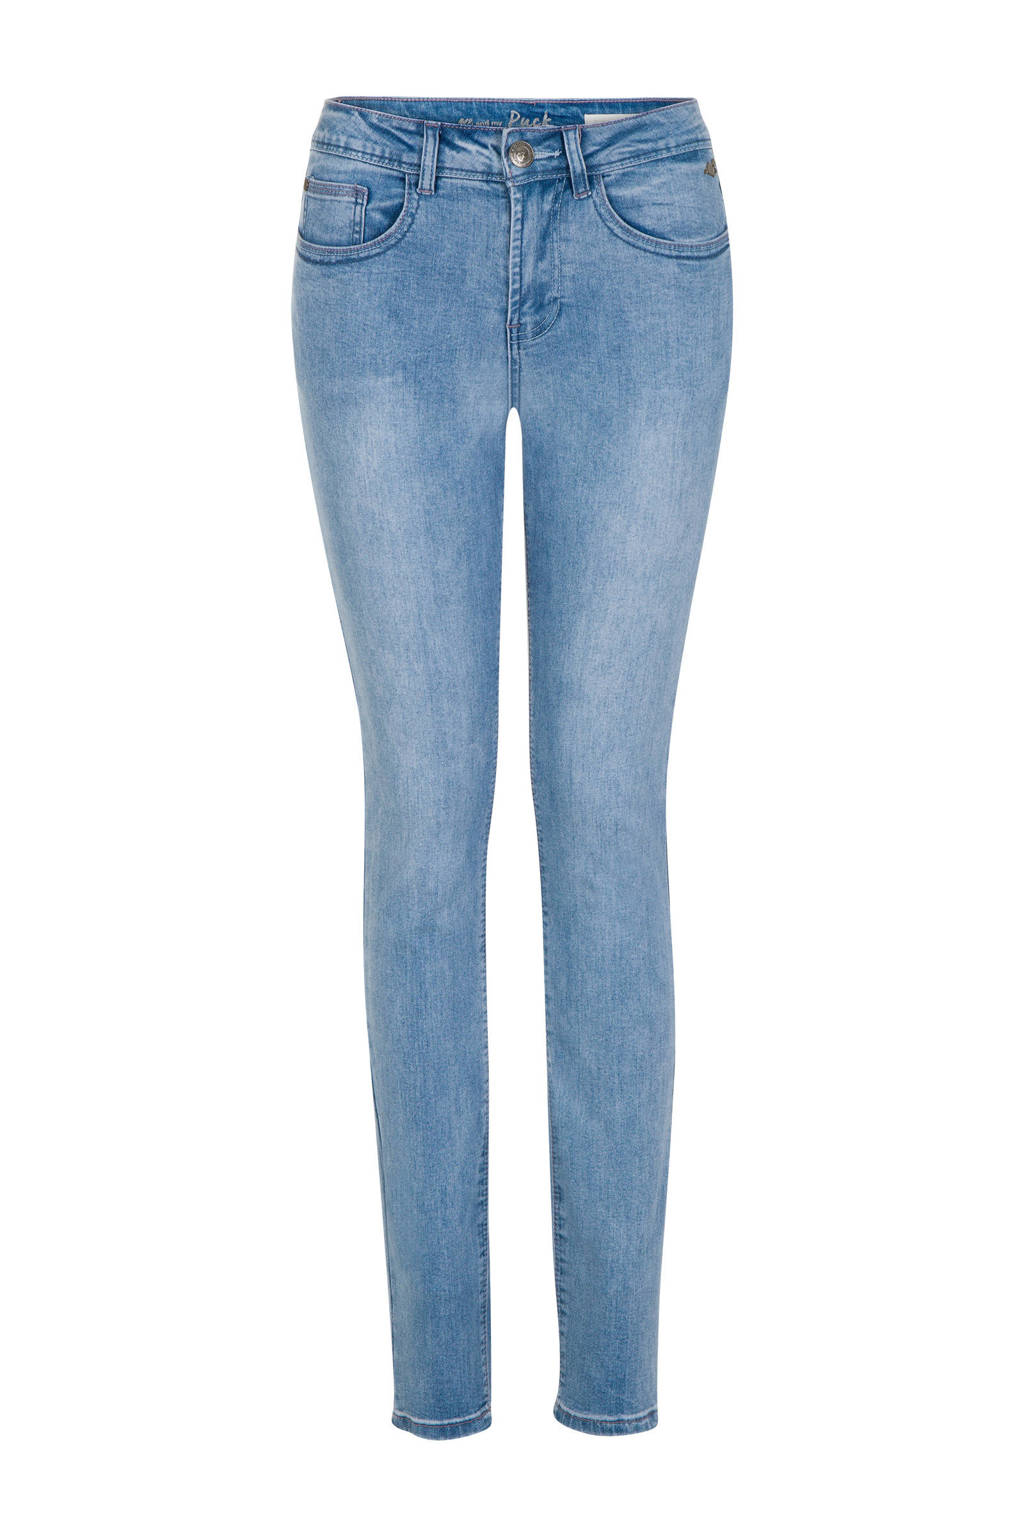 Miss Etam Regulier push up slim fit jeans 32 inch, Blauw